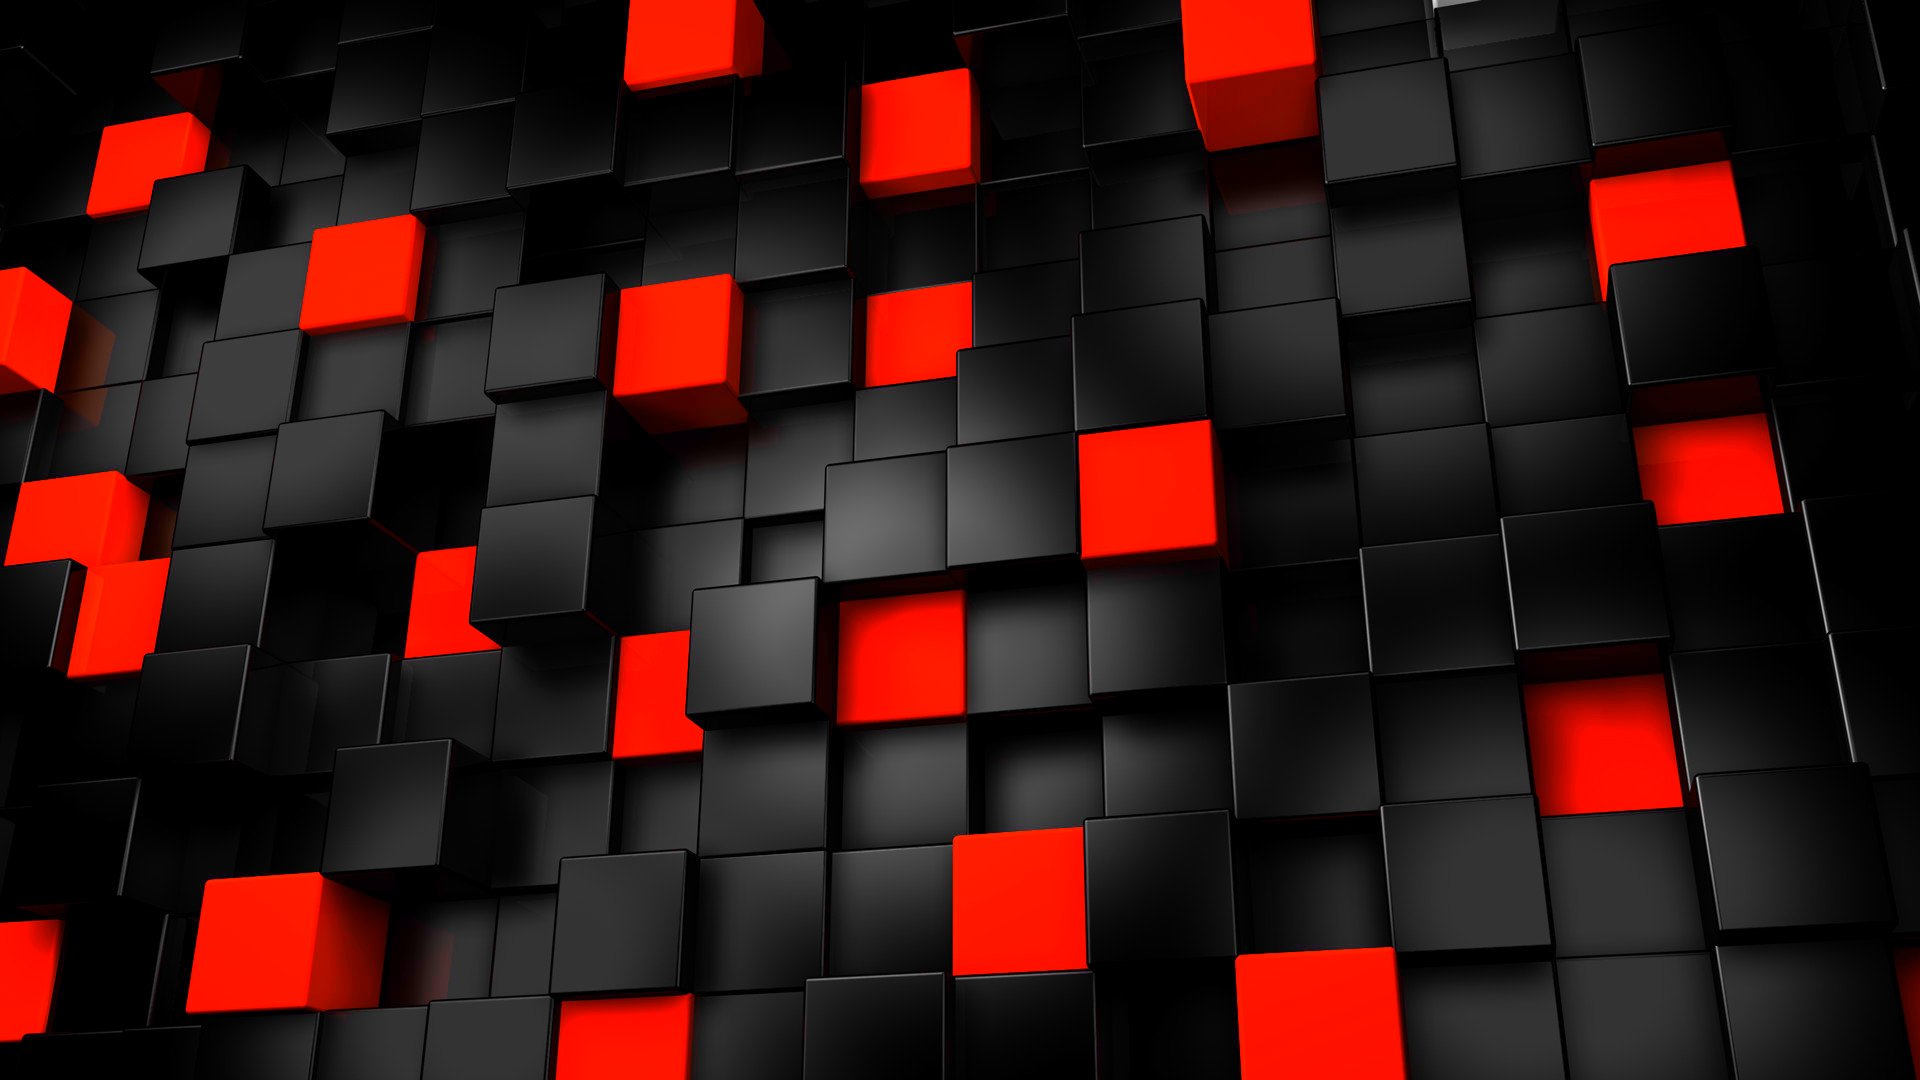 Abstract Black And Red Cubes Wallpapers Cool Deskop Wallpapers 1920x1080